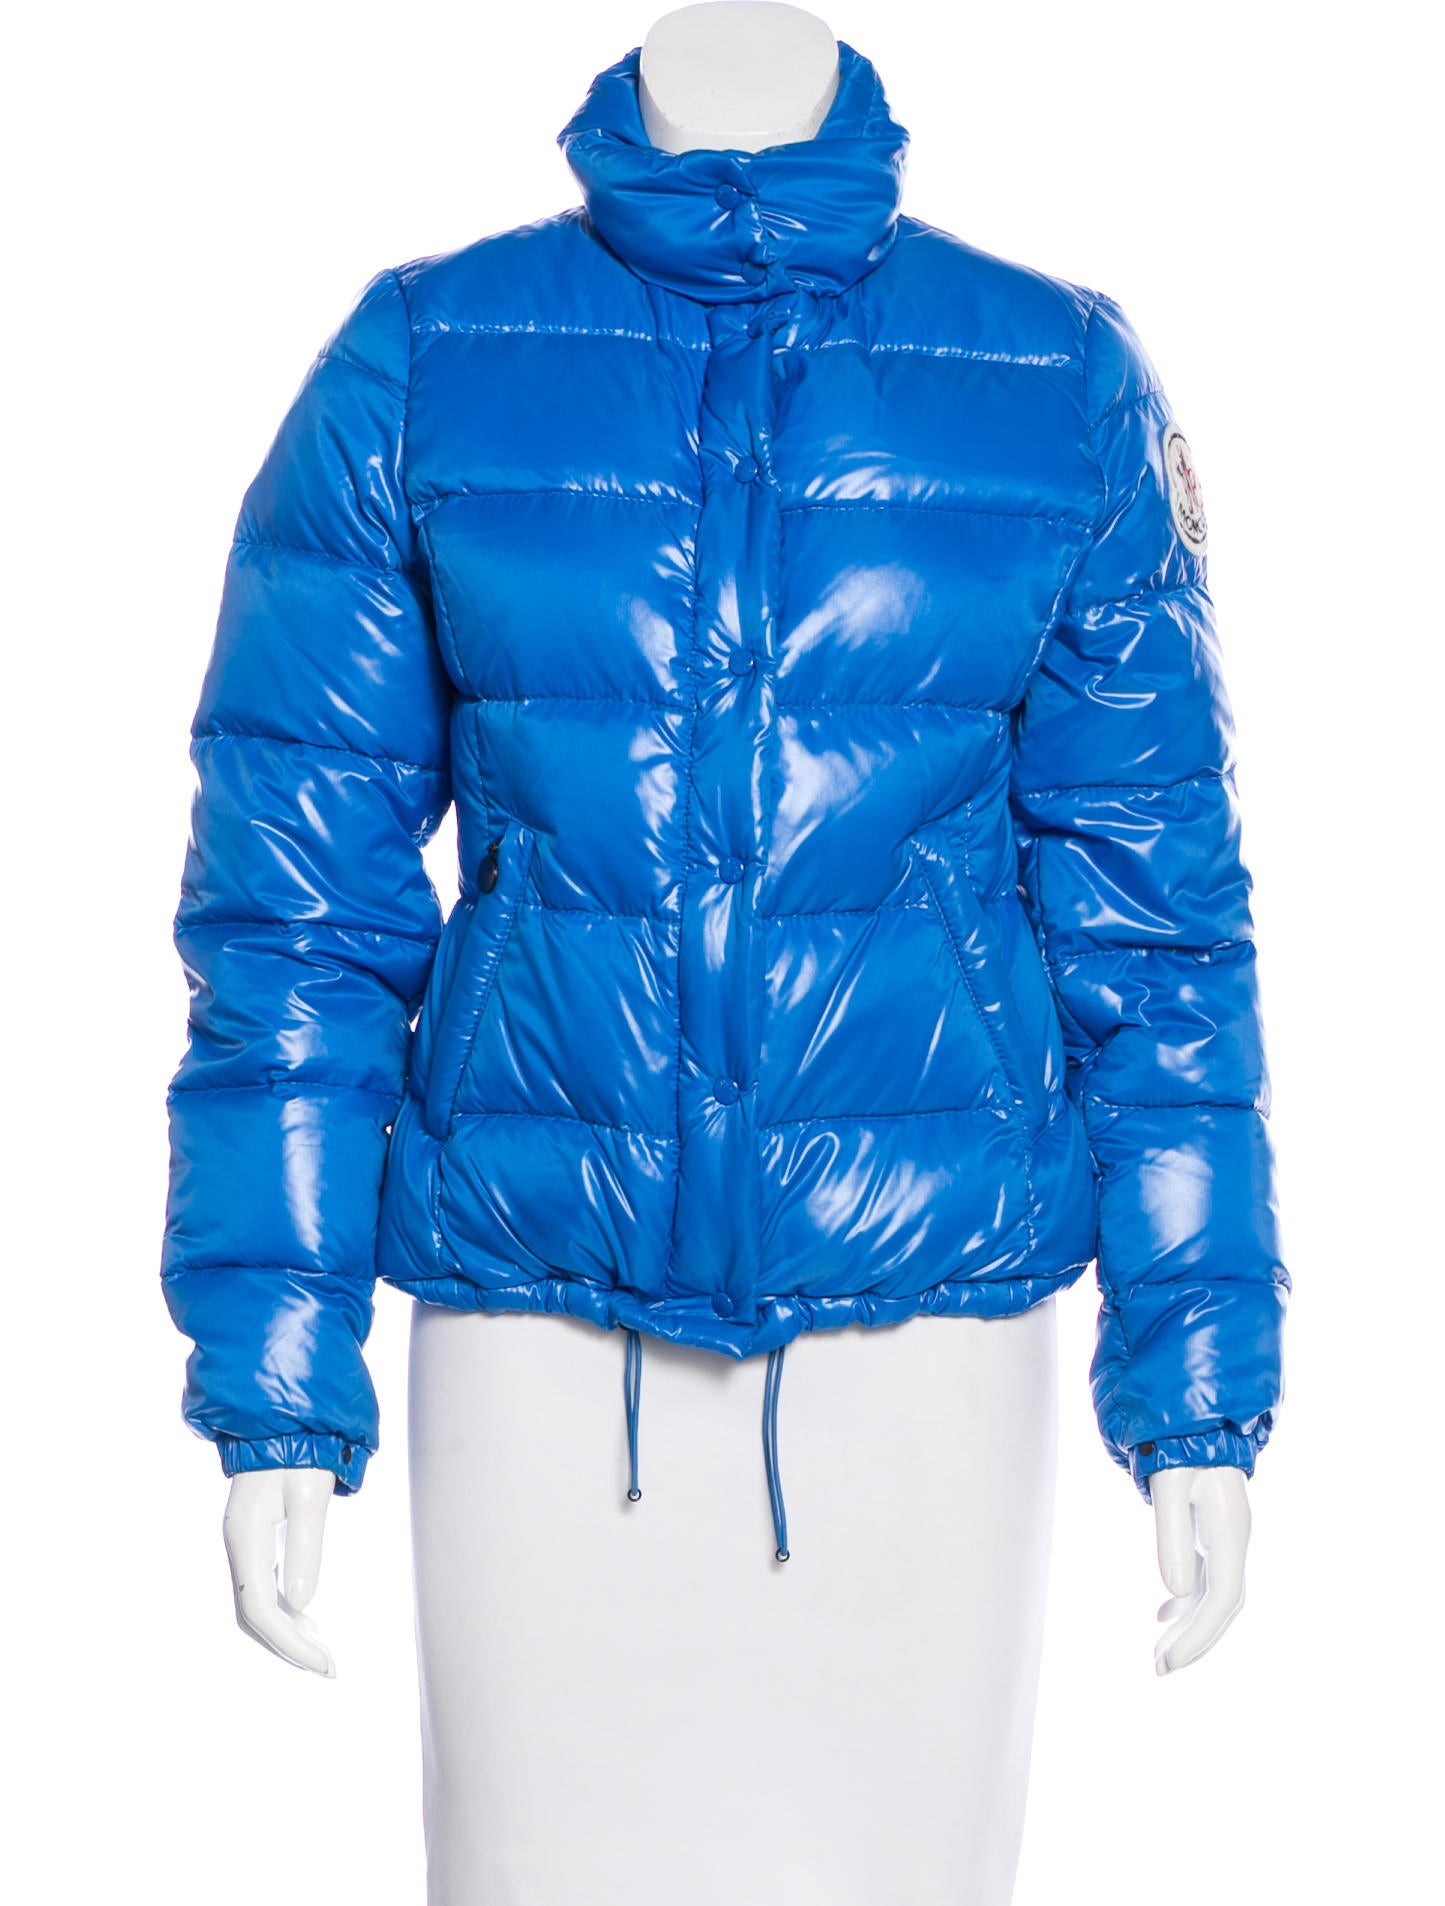 ebe06ceadb68 Moncler Claire Down Jacket - Clothing - MOC24391